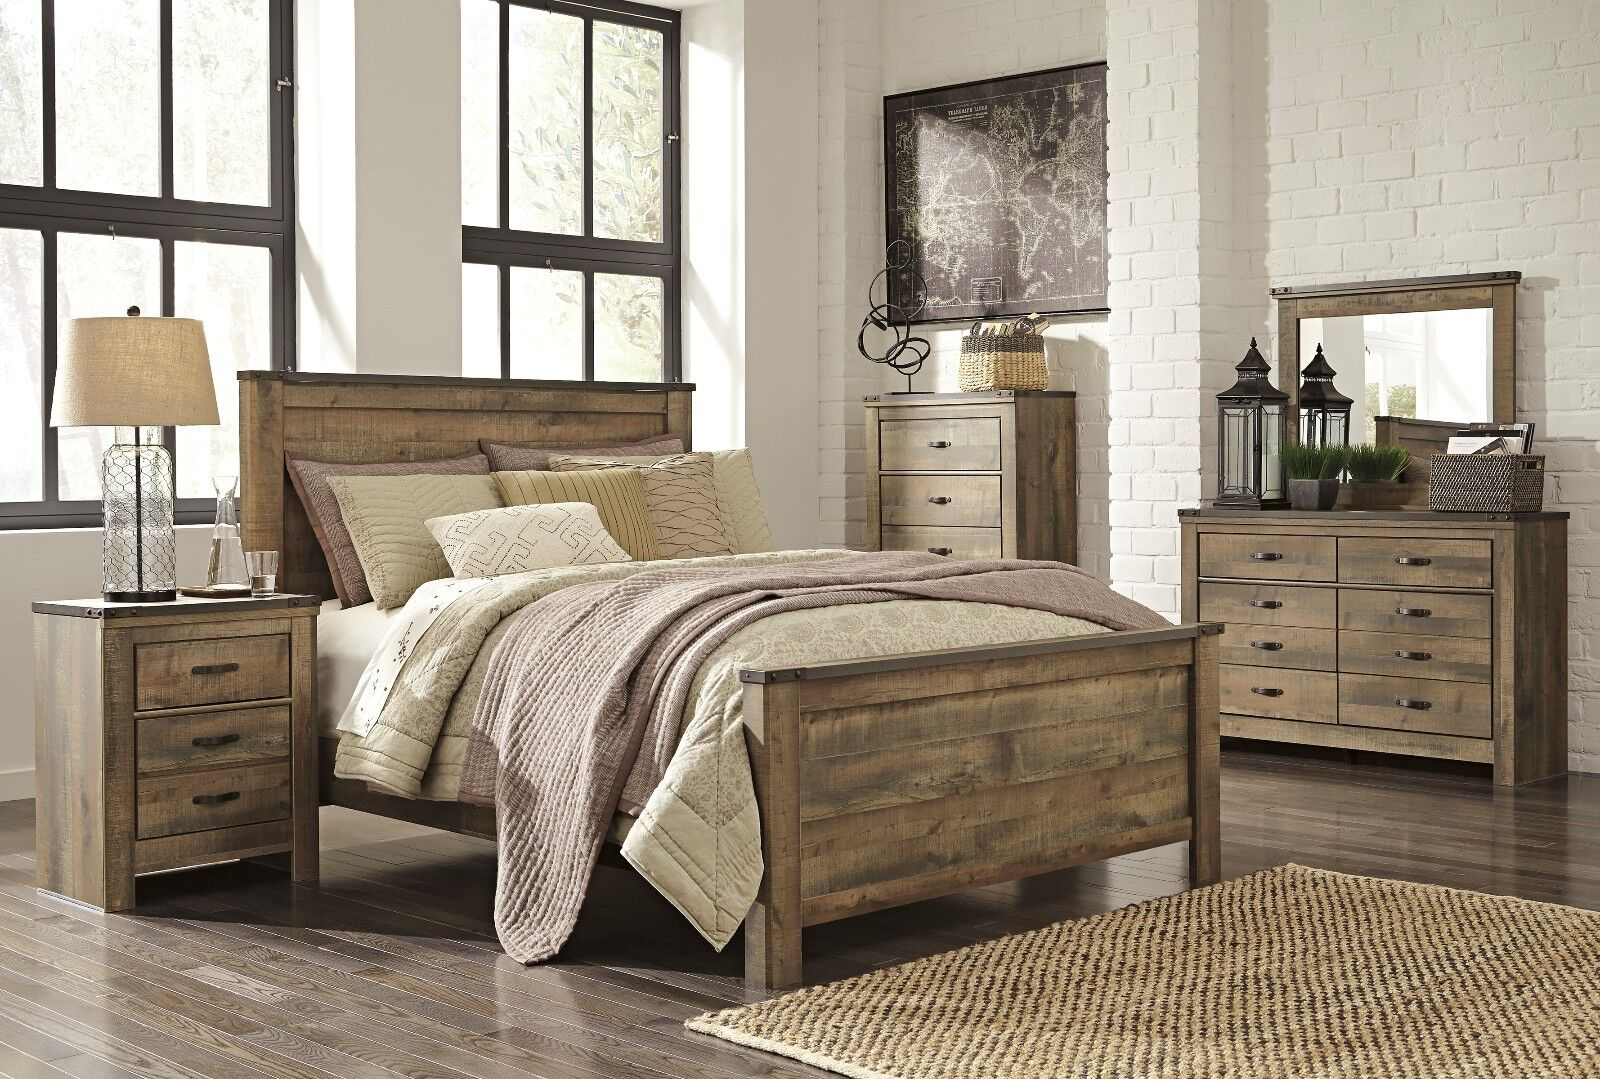 ashley trinell queen rustic 6 piece bed set furniture b446